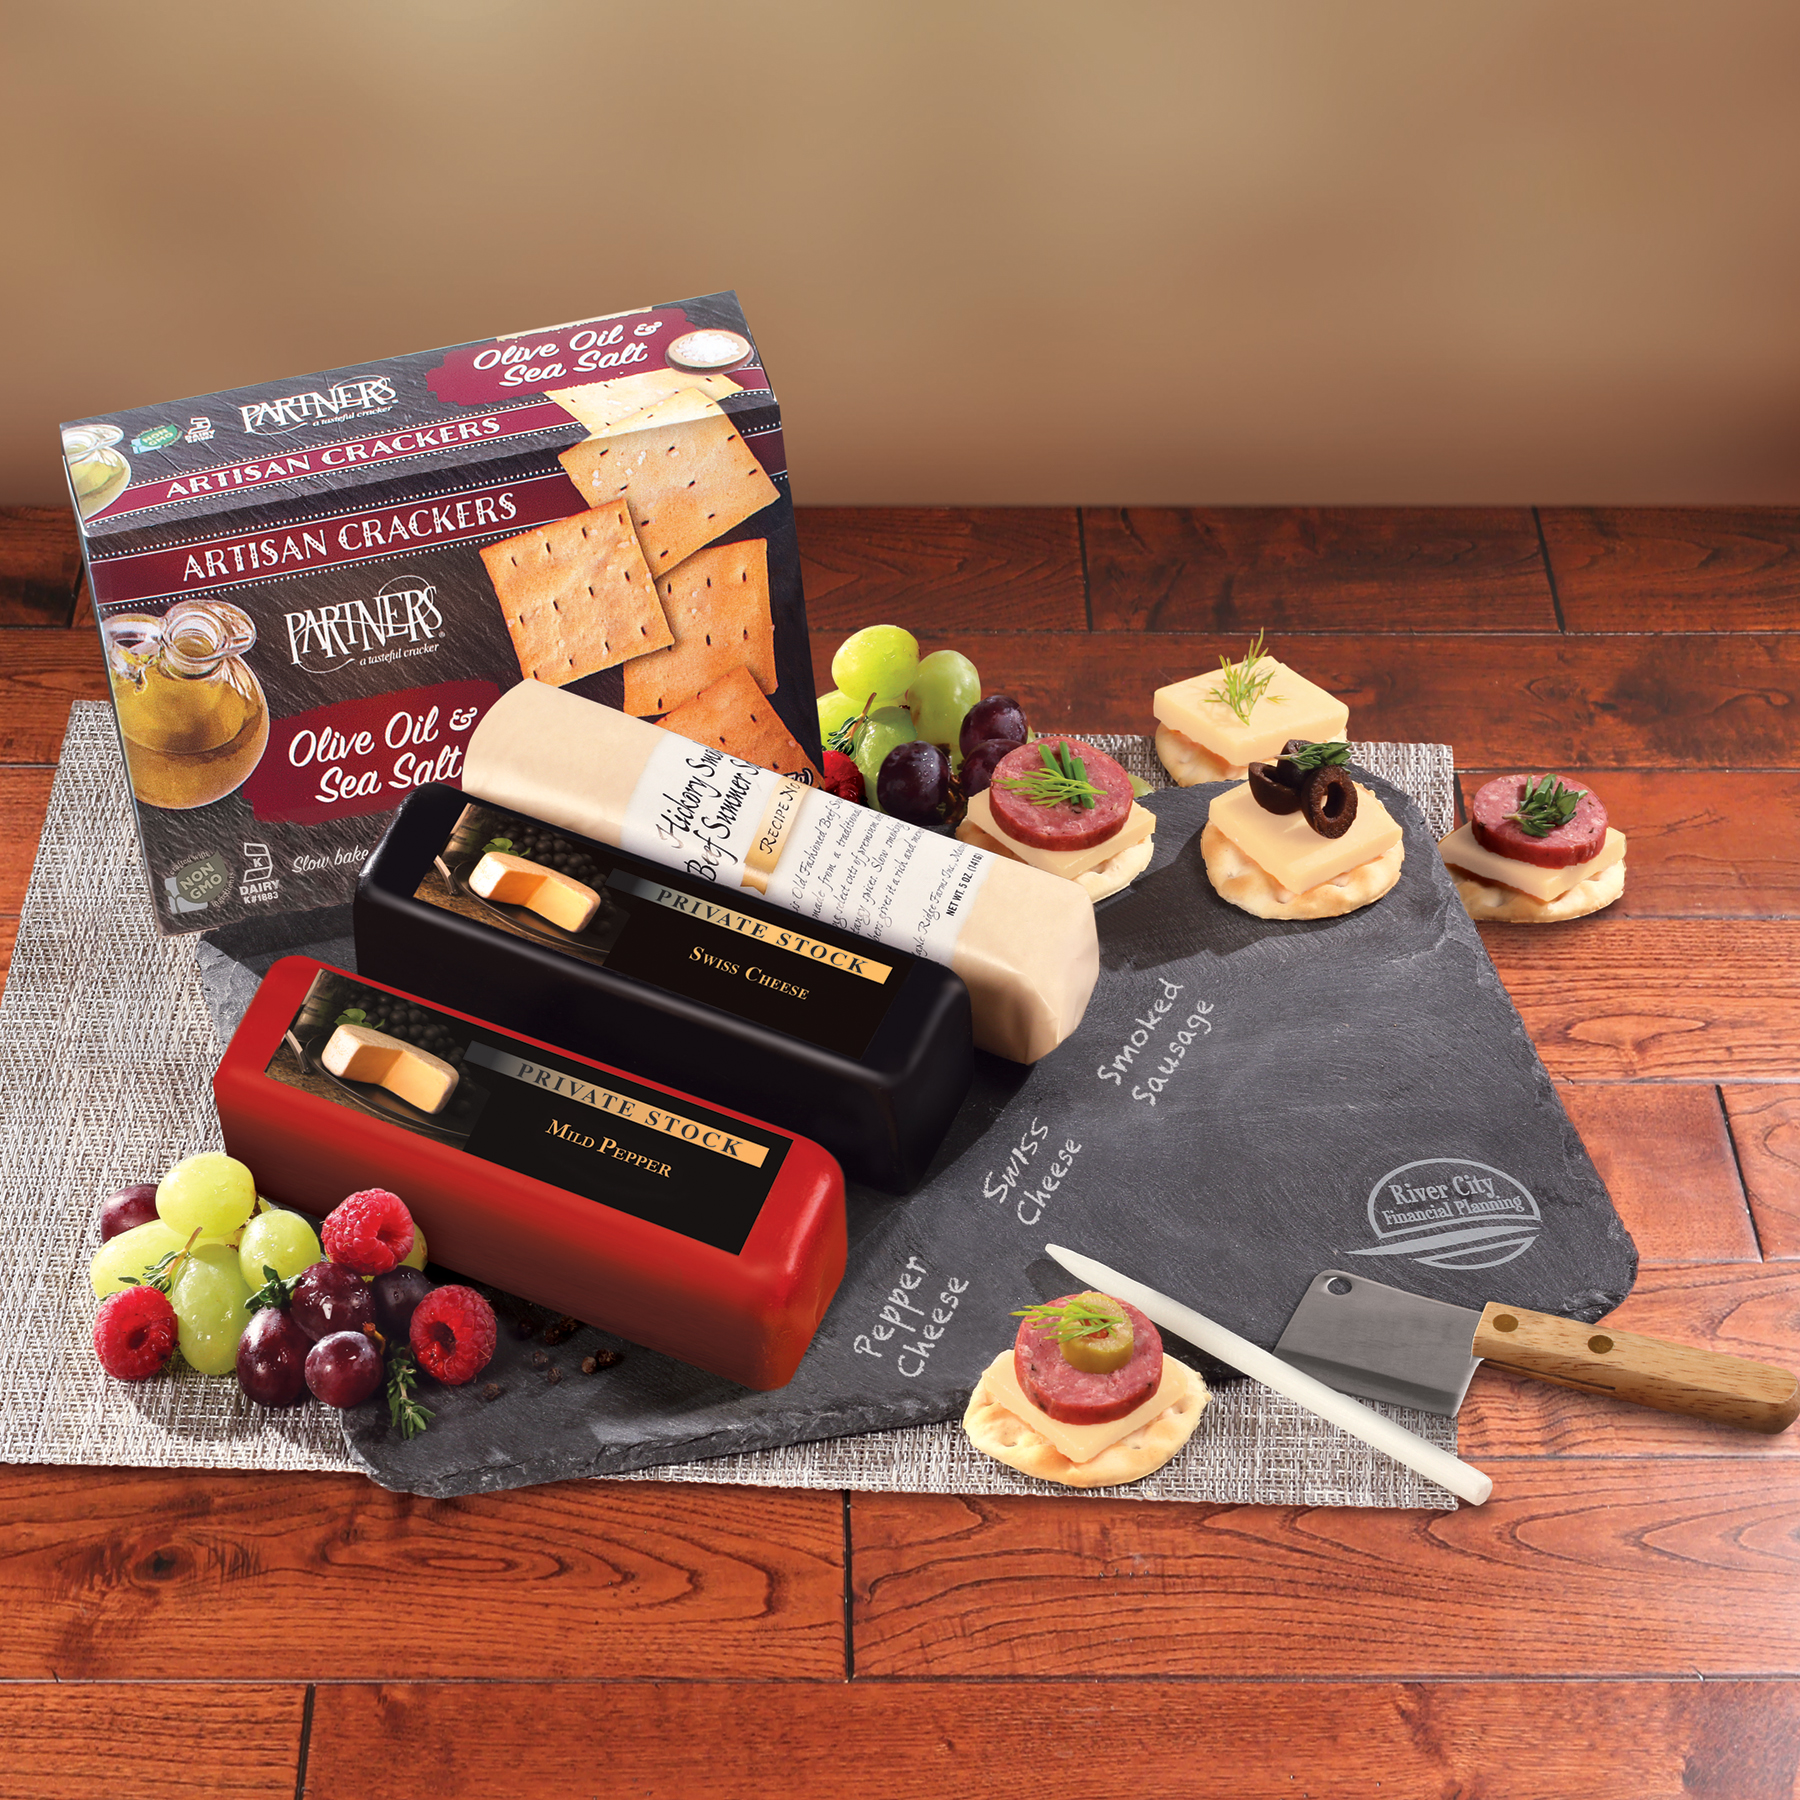 Free Ground Shipping on orders over $49 per address. More Info. Wisconsin Indulgence Gift Basket 6 Customer Ratings. Connect with the Wisconsin Cheese Mart. Connect with us on Pinterest, Facebook, and Instagram for great recipies, how-to's, and amazing deals.